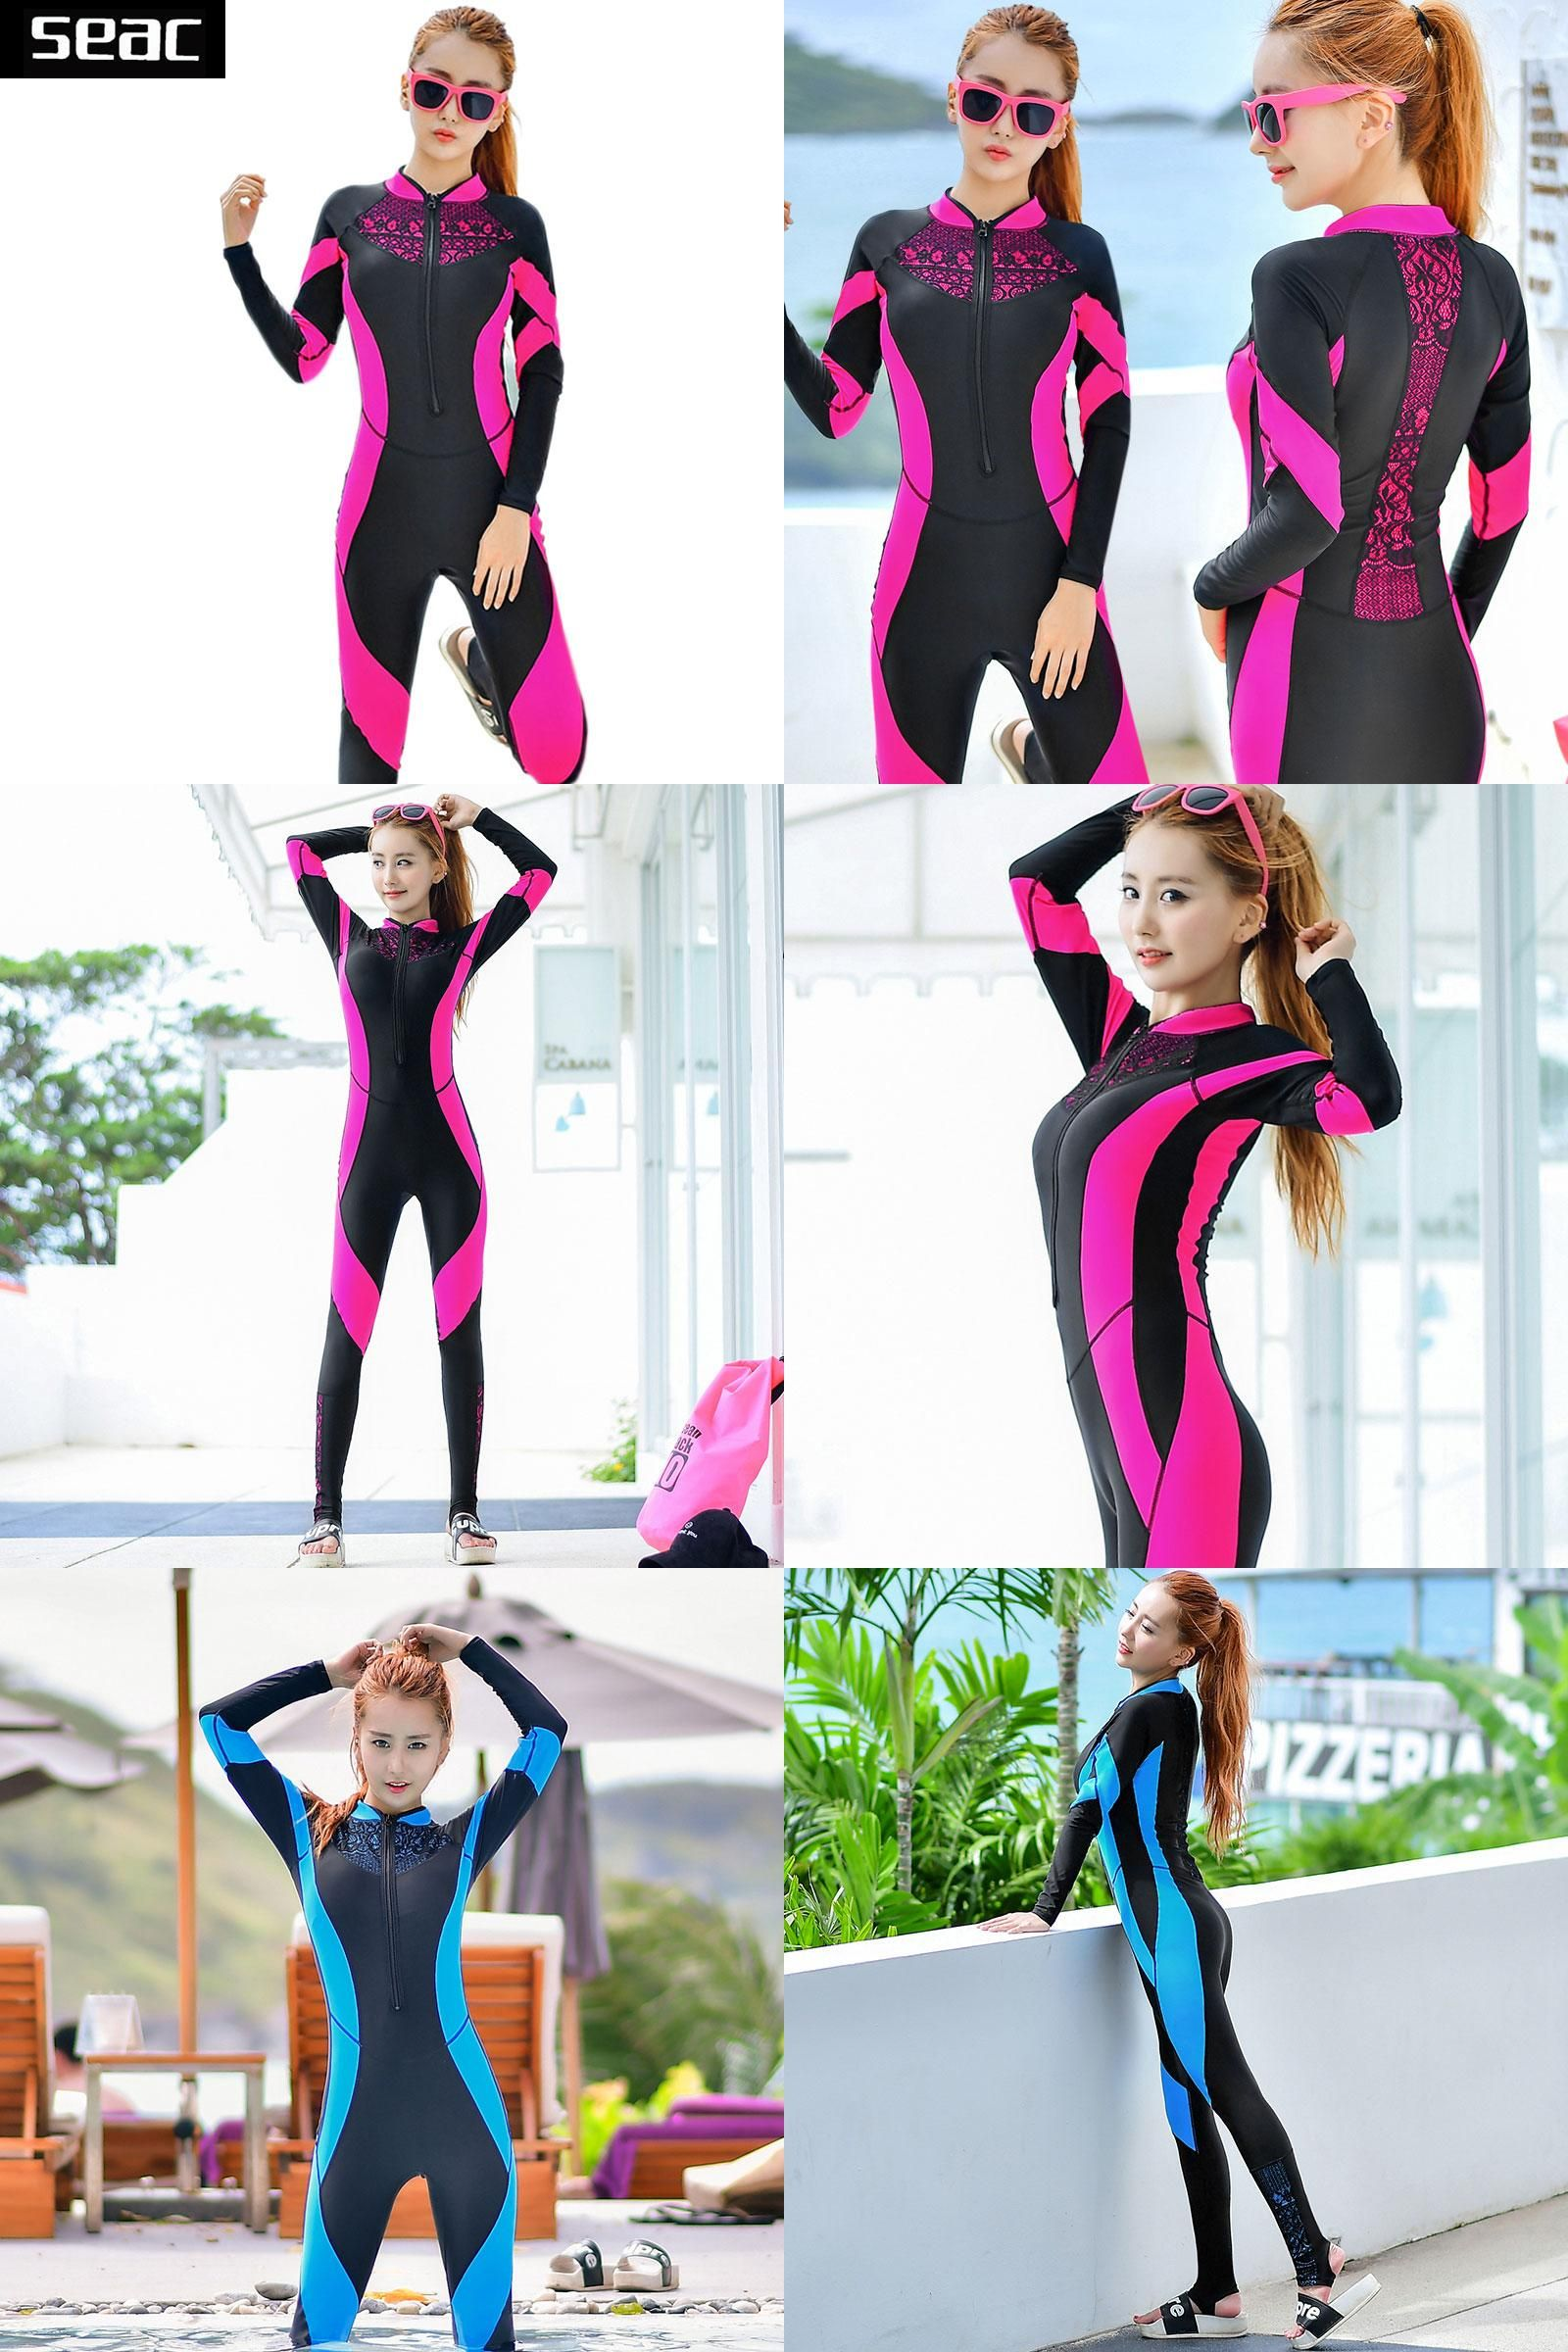 Visit to Buy  SEAC Lace Wetsuit Women Zipper Swimsuit Full Body Jumpsuits  Diving suit Rash Guard Wetsuits for Swimming Surfing Sports Clothing   ... b8b82b8c0